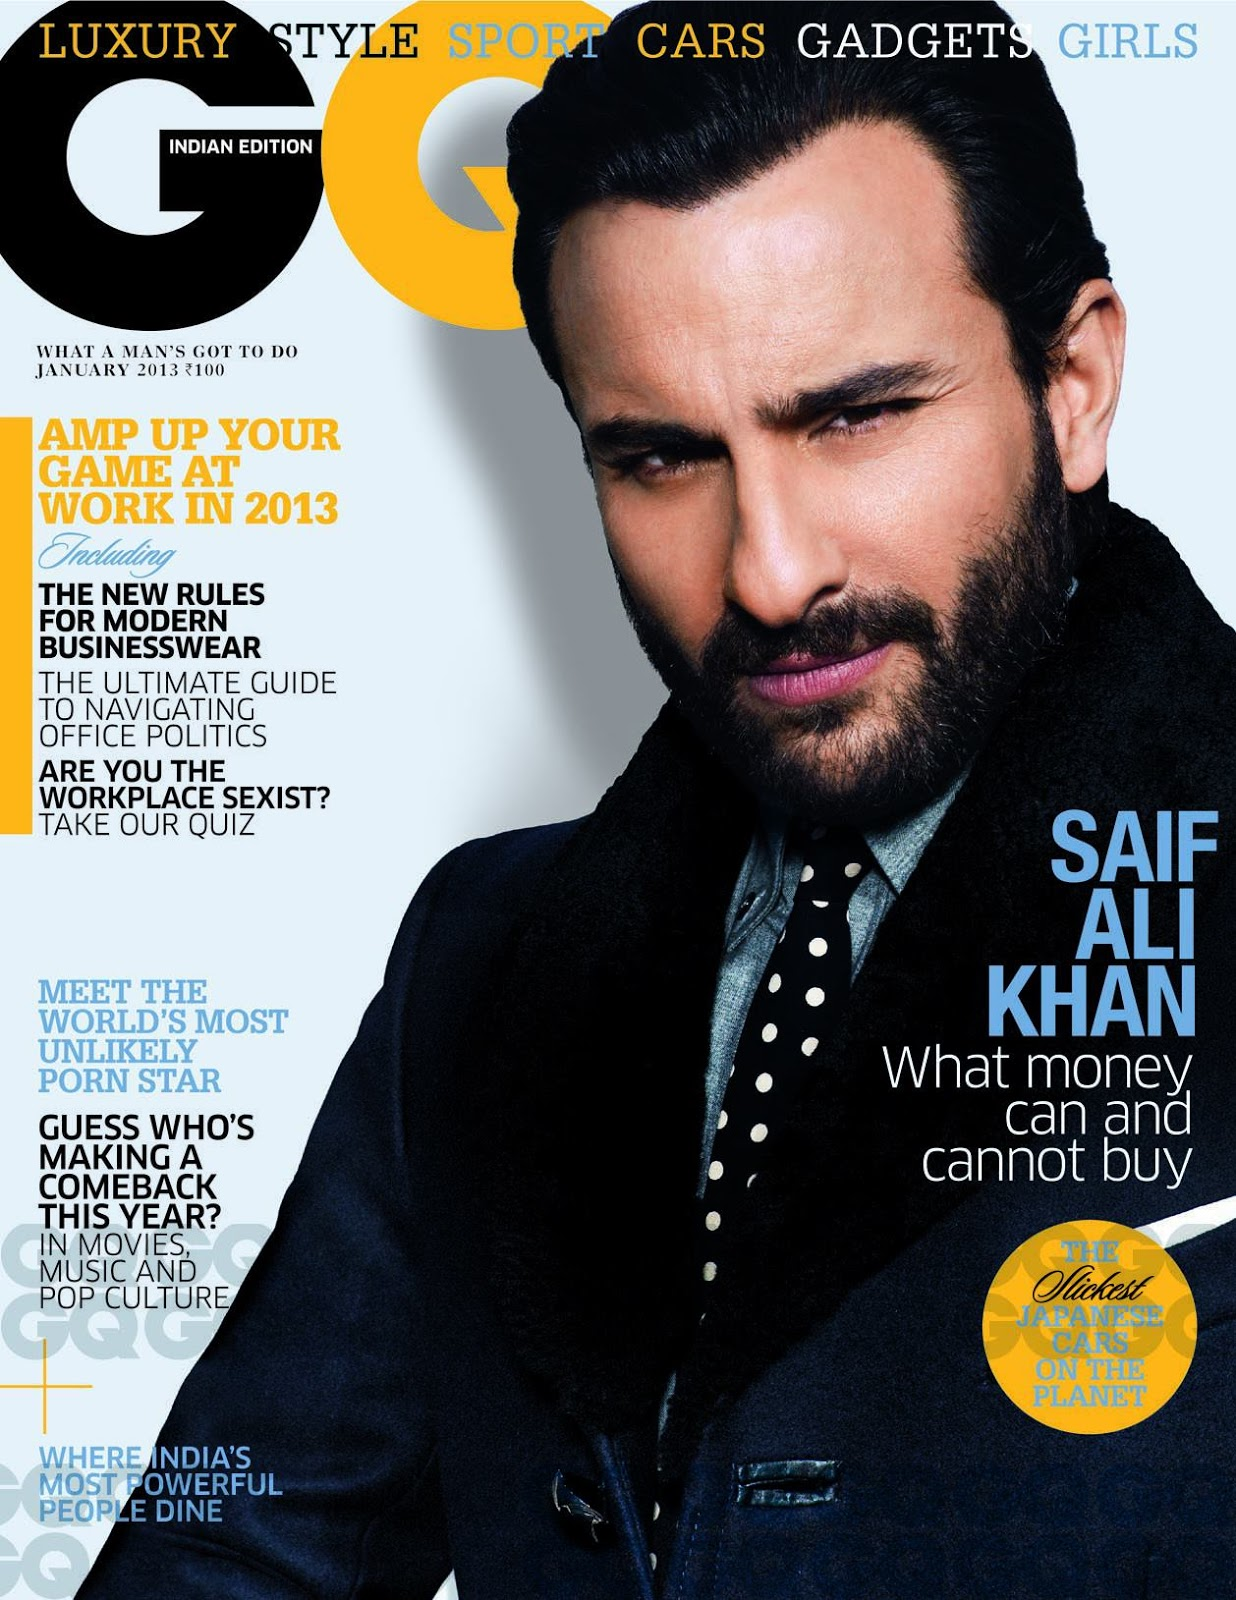 RAM SHERGILL PHOTOGRAPHS SAIF ALI KHAN FOR GQ